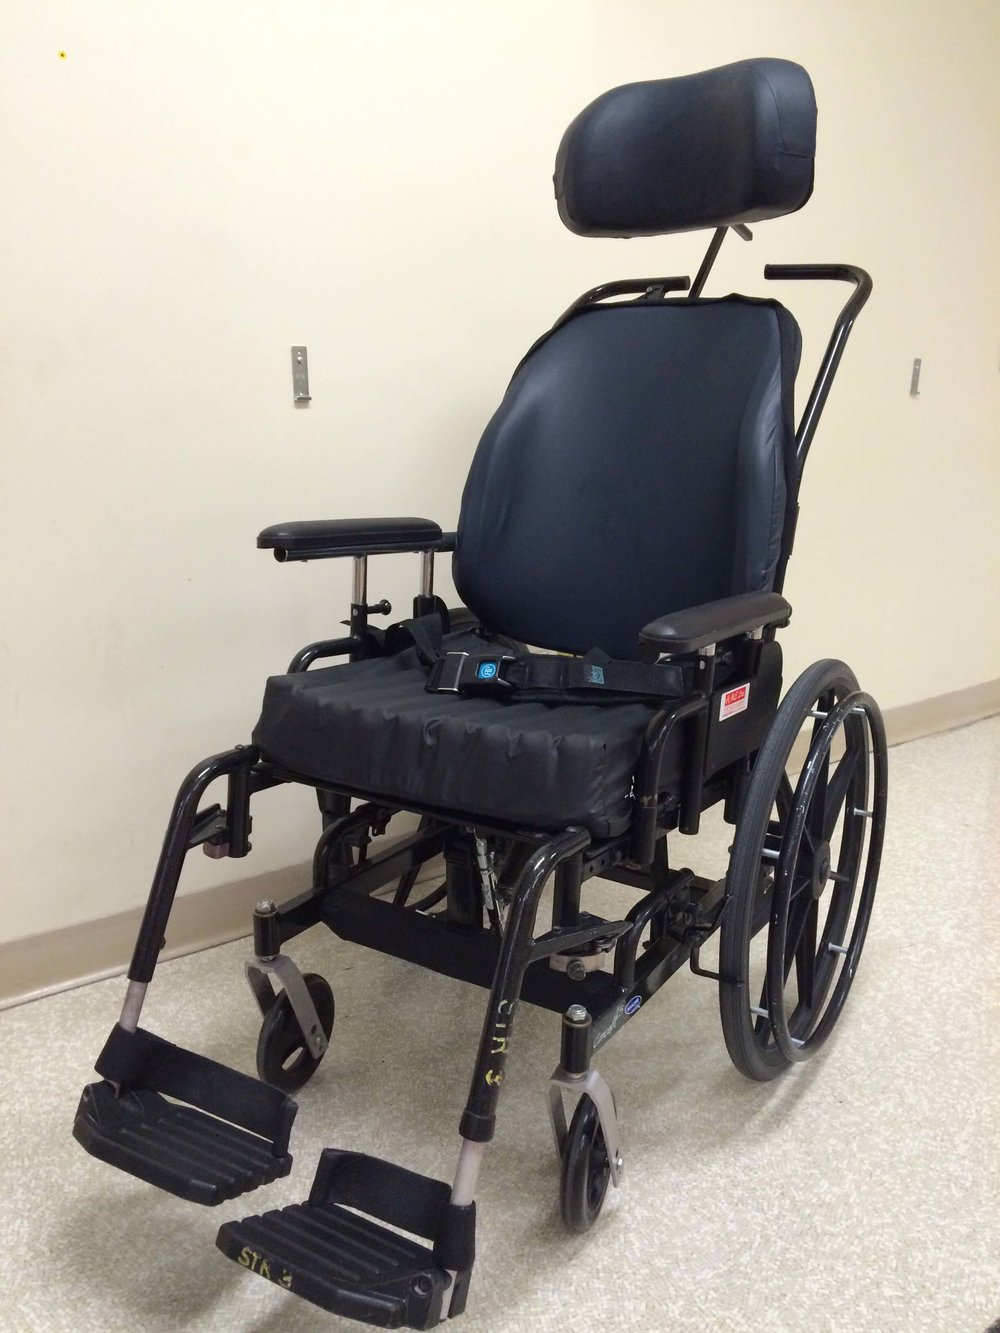 Wheelchair with backrest